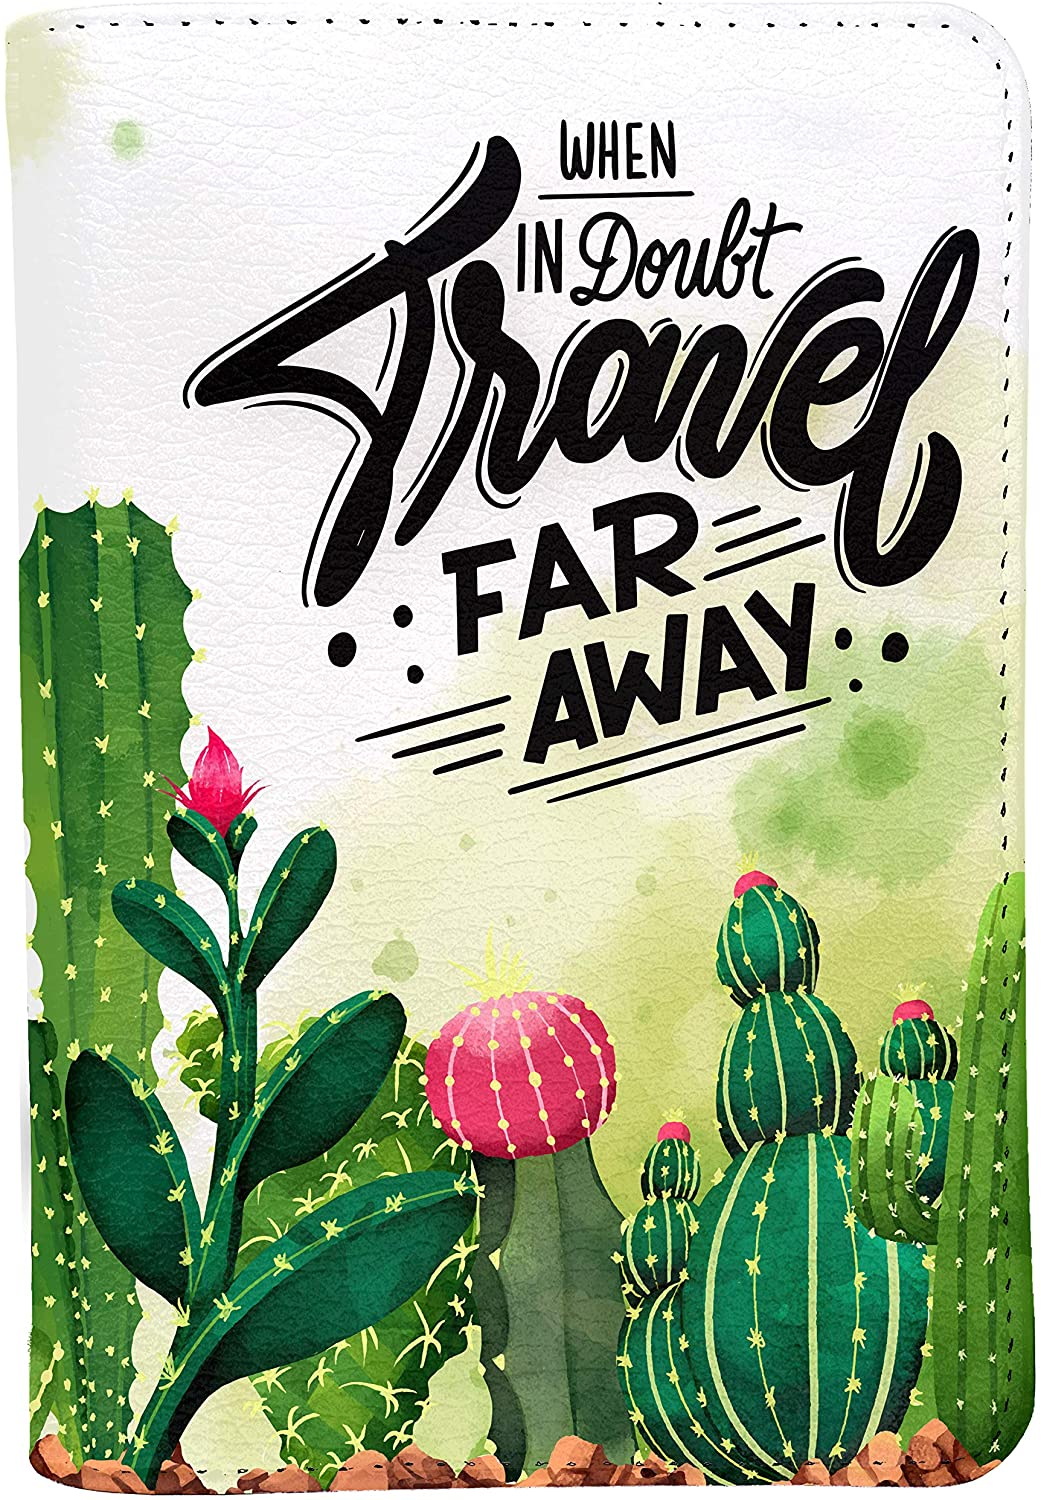 Cactus Travel Far Away Personalized Leather RFID Passport Holder Cover - Travel Wallet